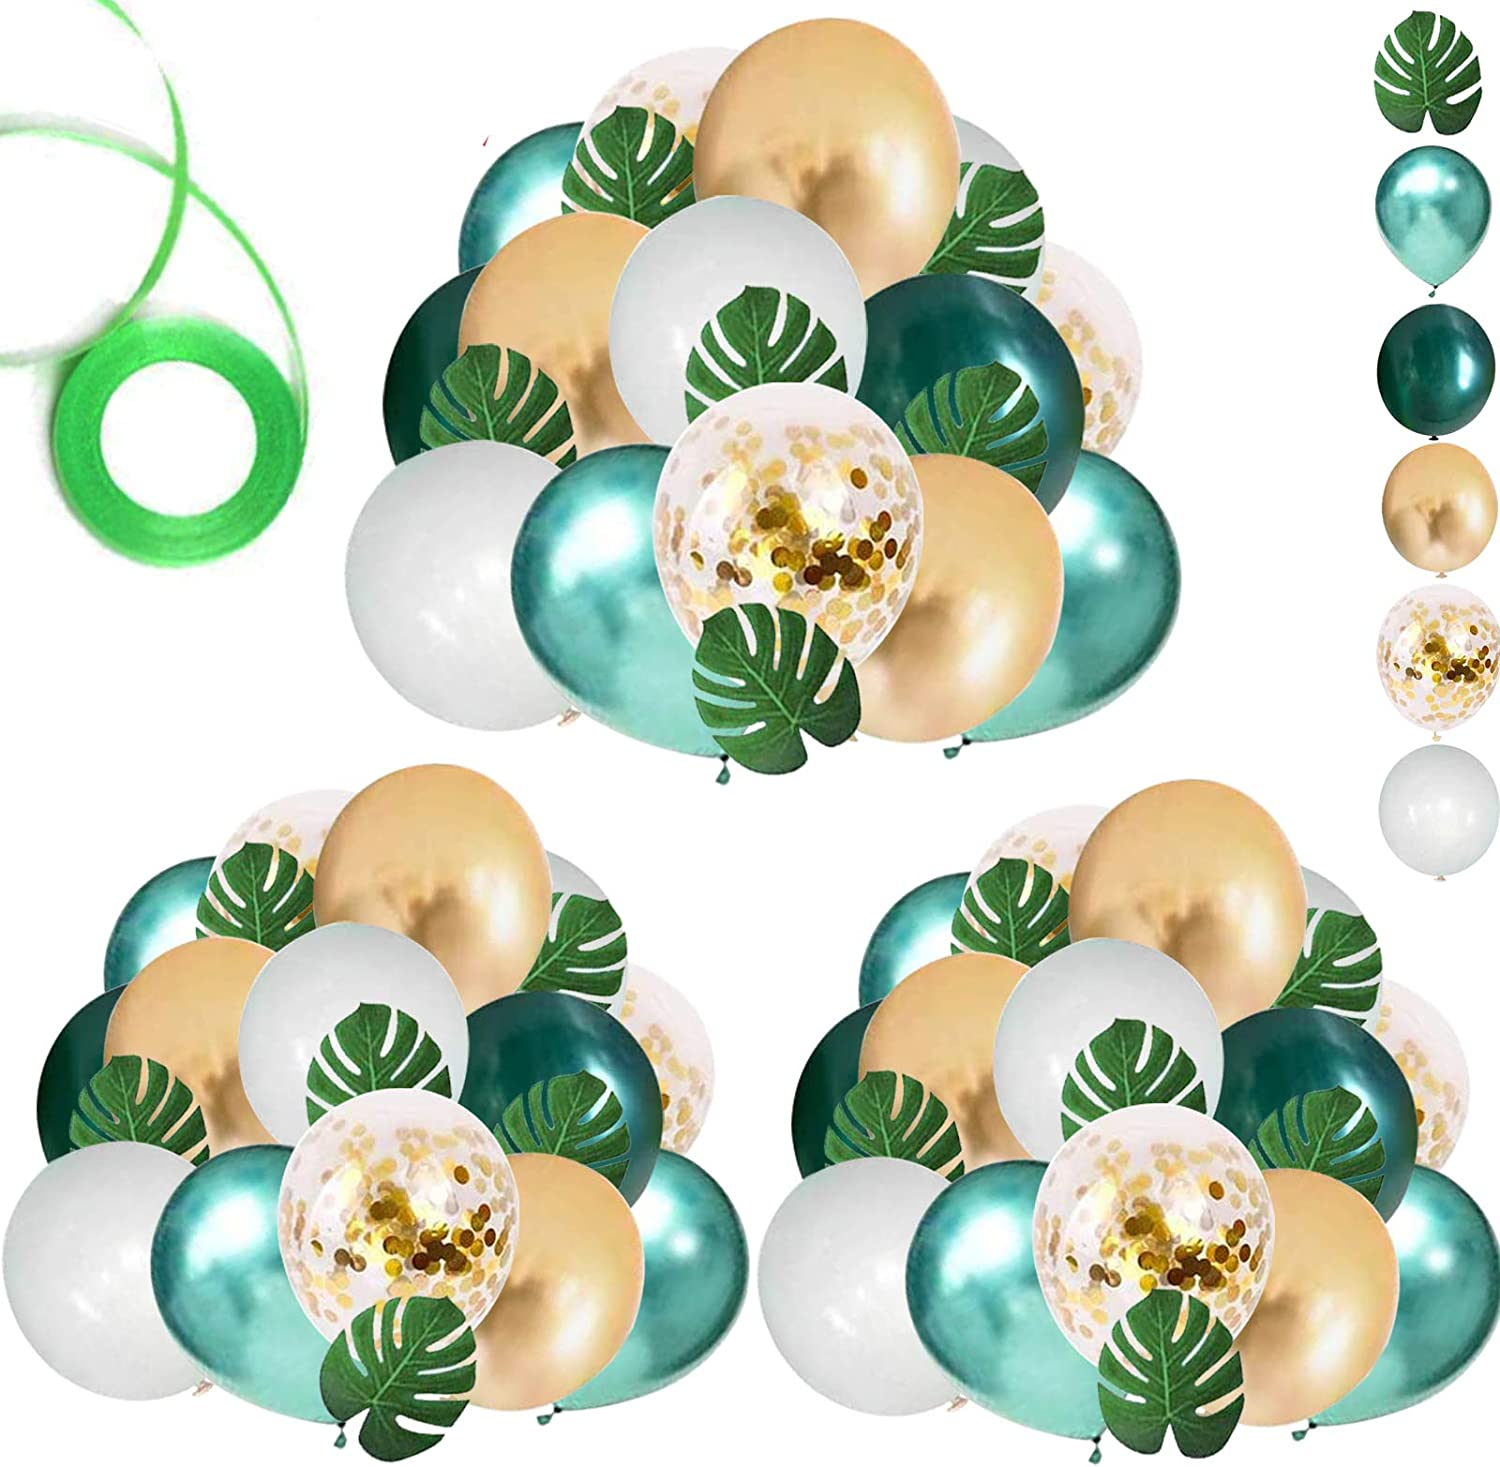 OuMuaMua 68 Pack Jungle Safari Baby Shower Balloons, 12 Inches Green White Gold Confetti Balloons with 12pcs Palm Leaves for Kids Boys Jungle Safari Birthday Baby Shower Decorations